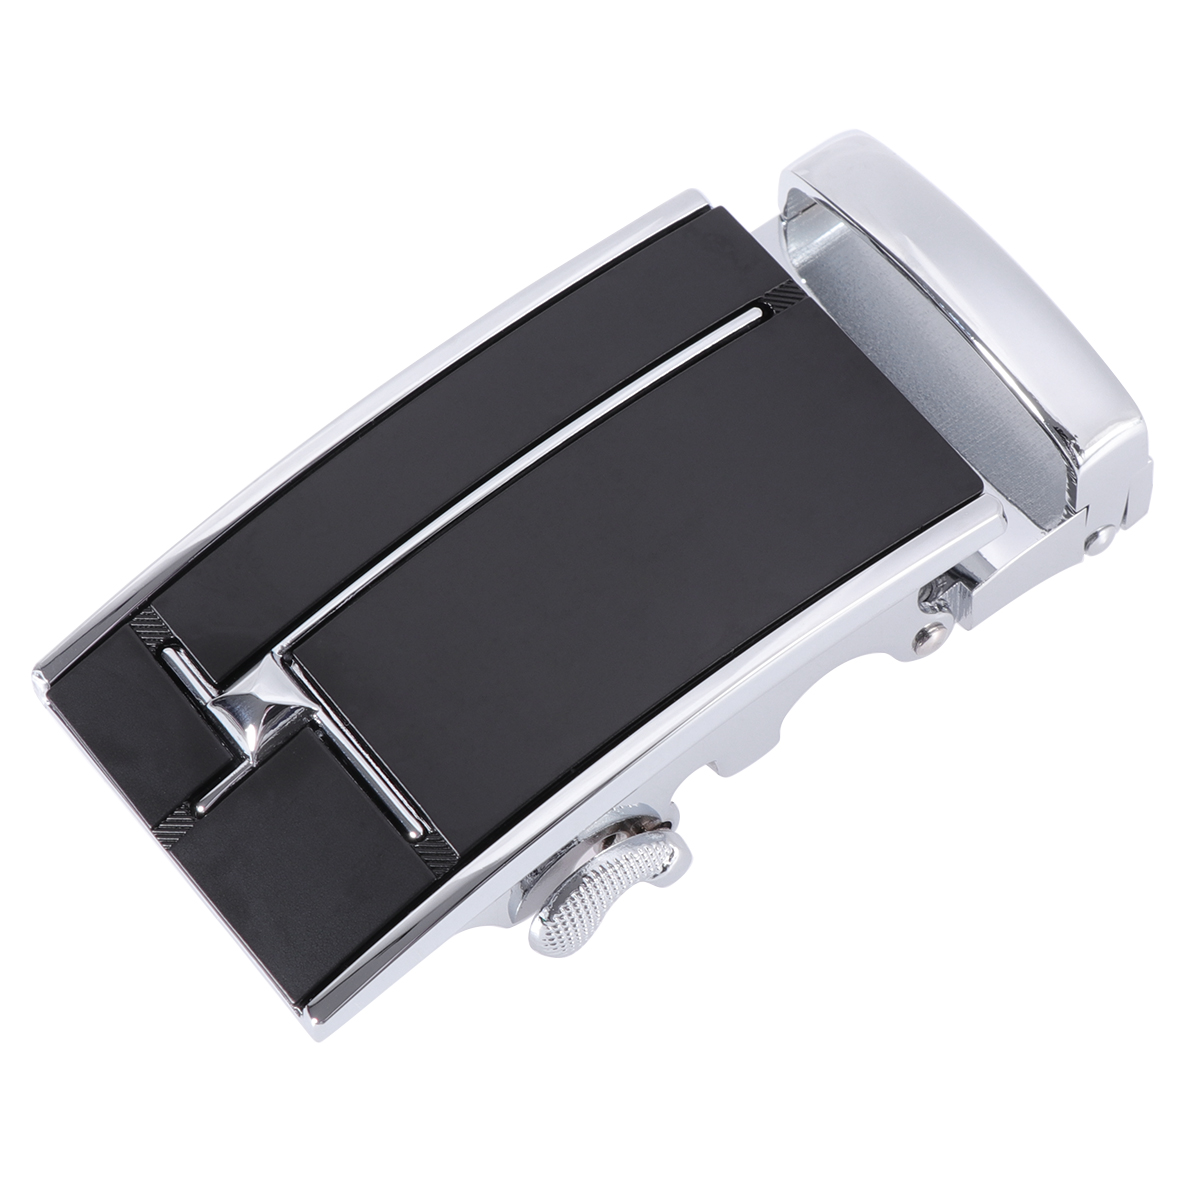 Fashion Men's Business Alloy Automatic Buckle Unique Men Plaque Belt Buckles For 3.5cm Ratchet Belt Men Apparel Accessories